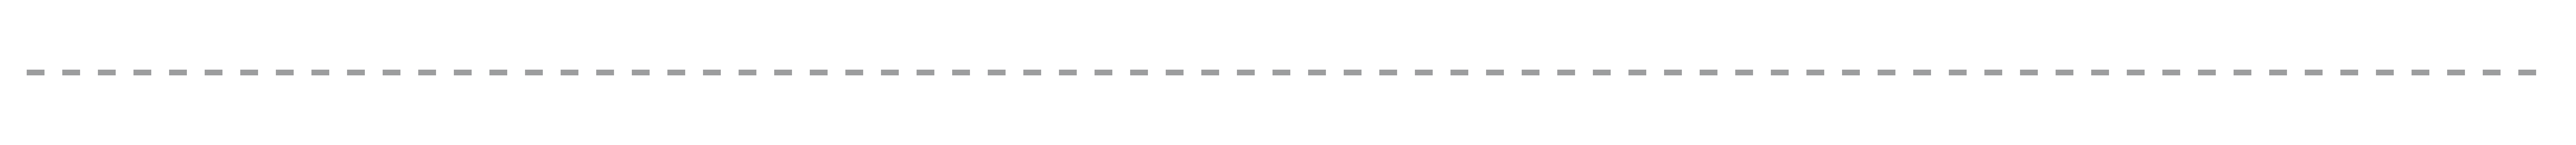 Image result for dotted line png